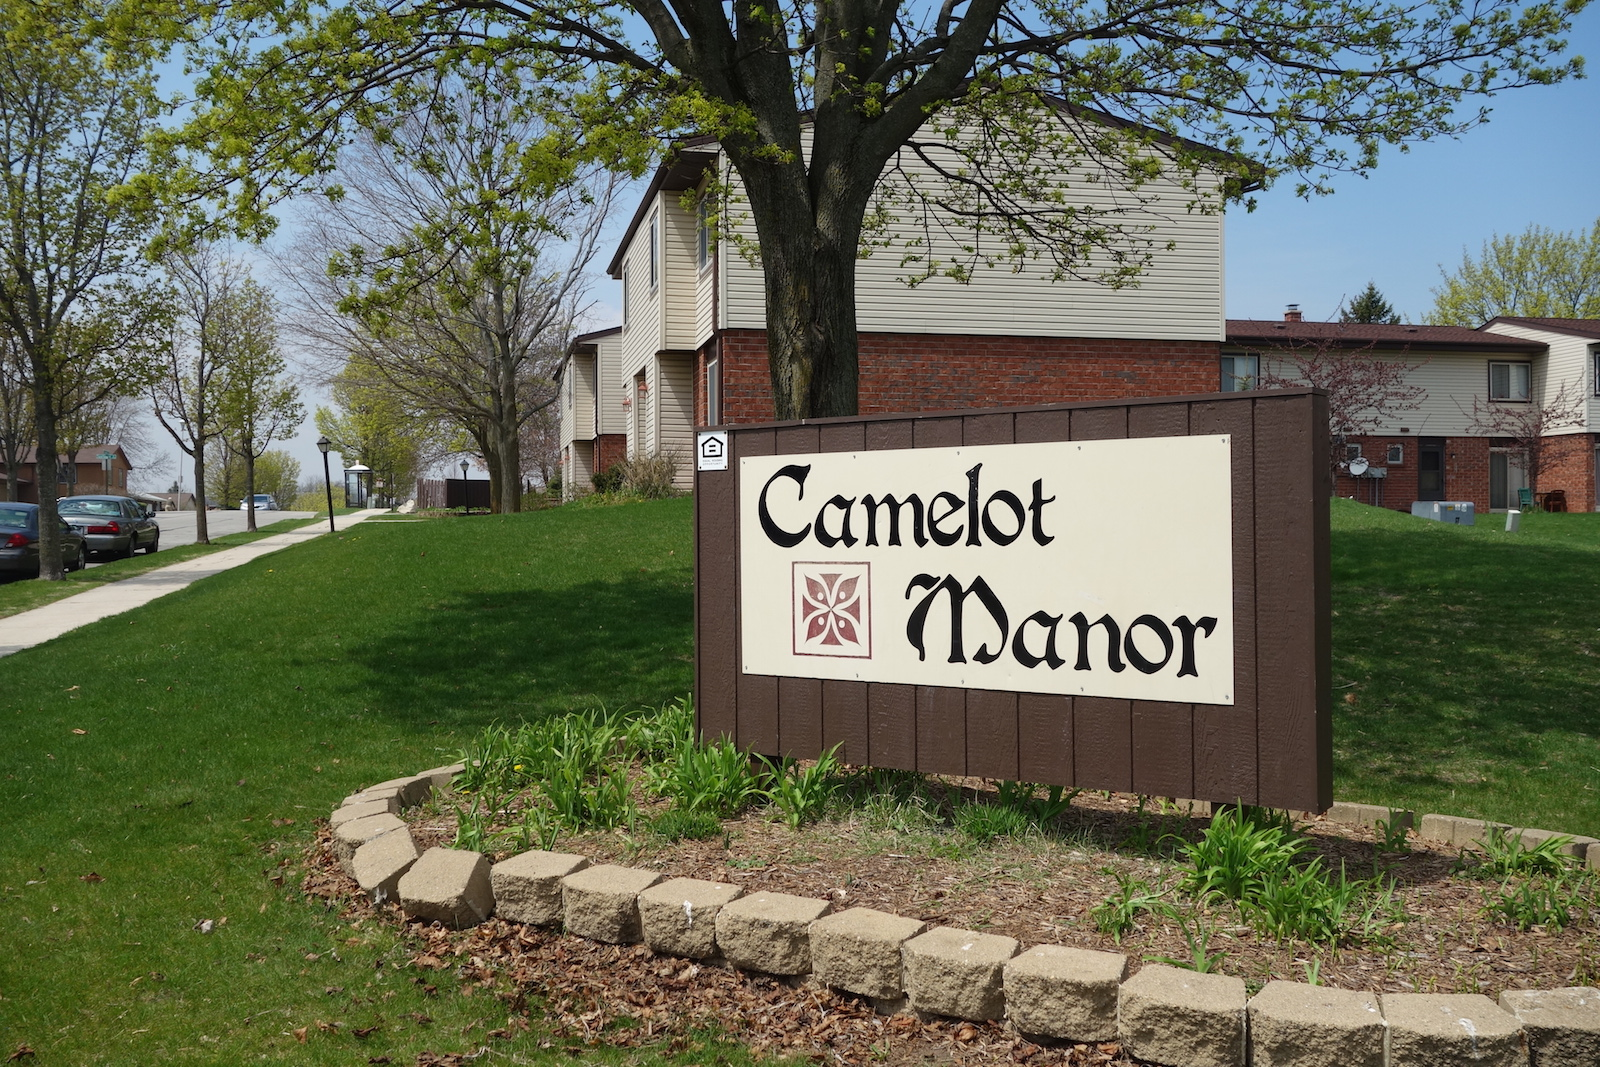 Camelot Manor 01